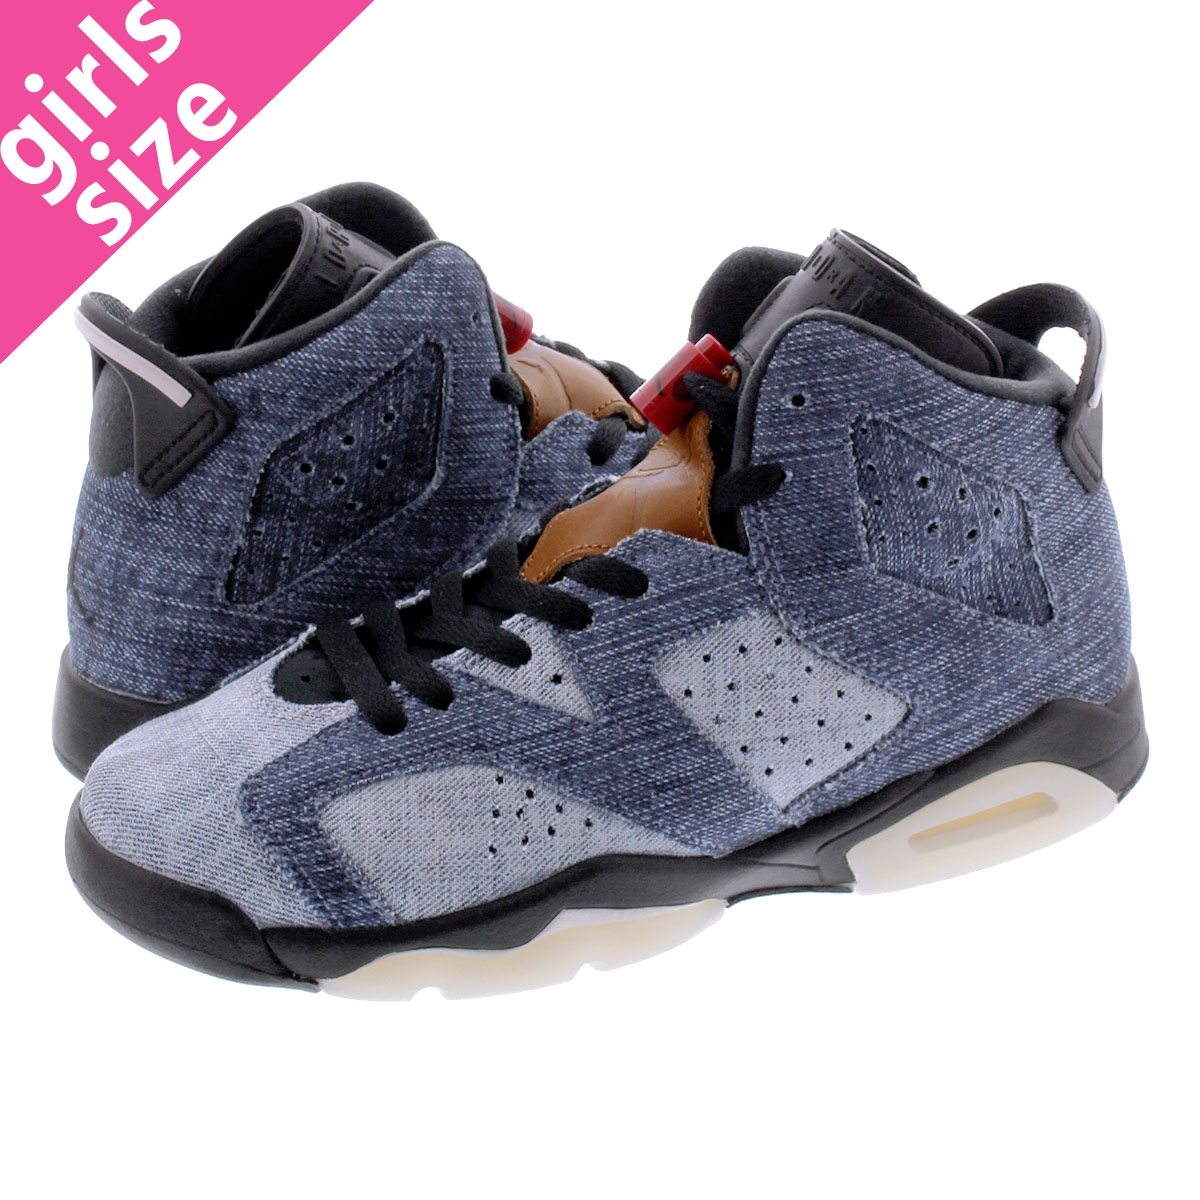 NIKE AIR JORDAN 6 RETRO GS ナイキ エア ジョーダン 6 レトロ GS WASHED DENIM/SAIL/VARSITY RED/BLACK cv5489-401